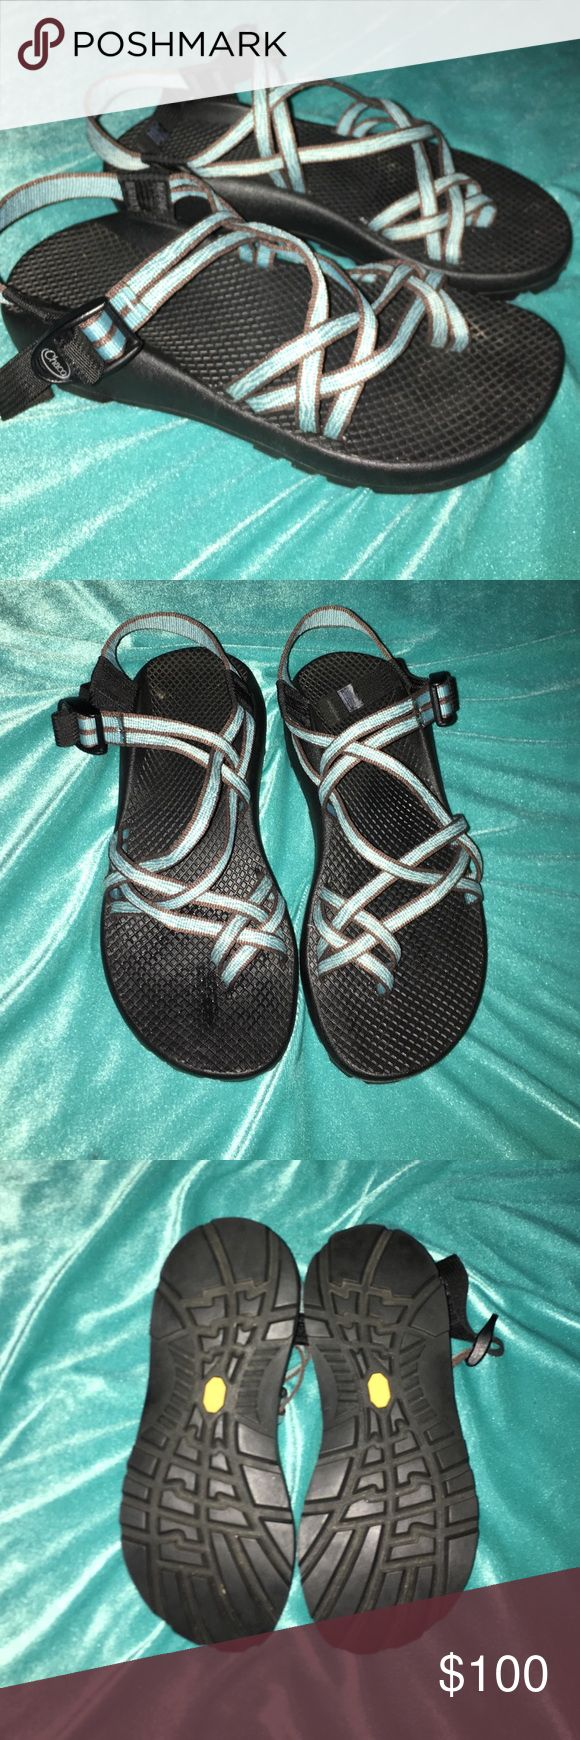 Blue Chacos Chacos with blue. Like new. Women's size 9 Chaco Shoes Sandals